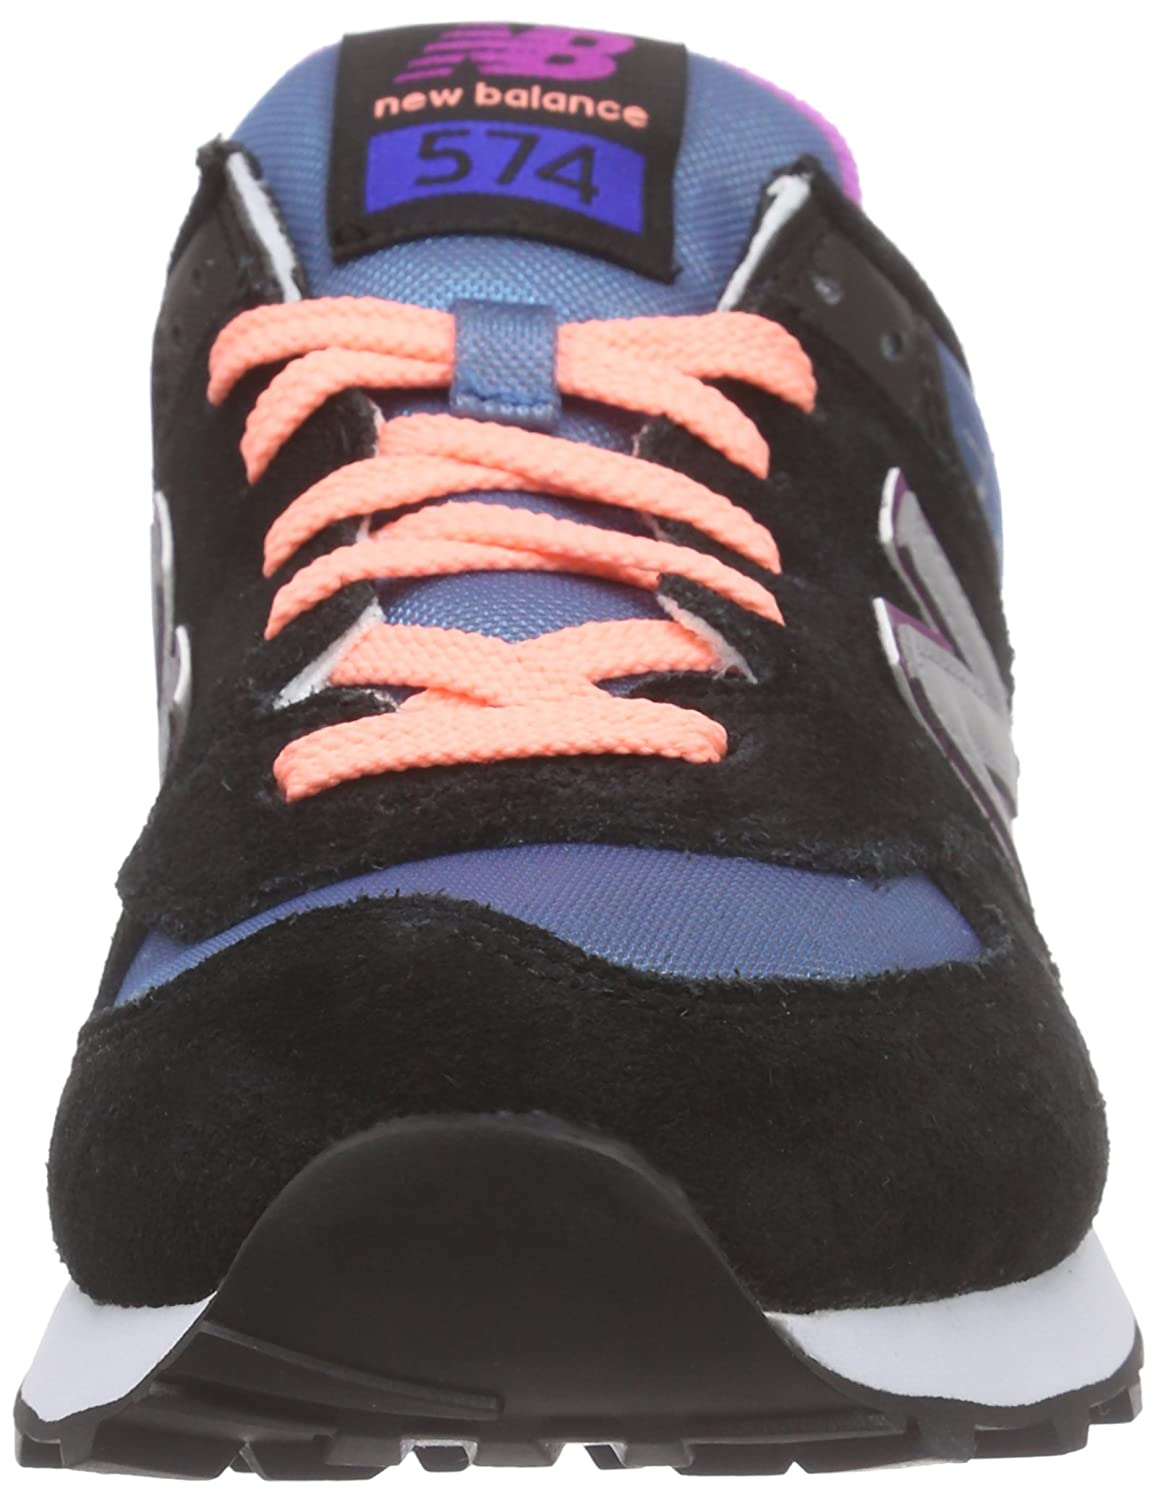 New Balance NBWL574TPA, Scarpe da Ginnastica Donna, Multicolore (Black  Cosmic Coral), 39 EU: Amazon.it: Scarpe e borse